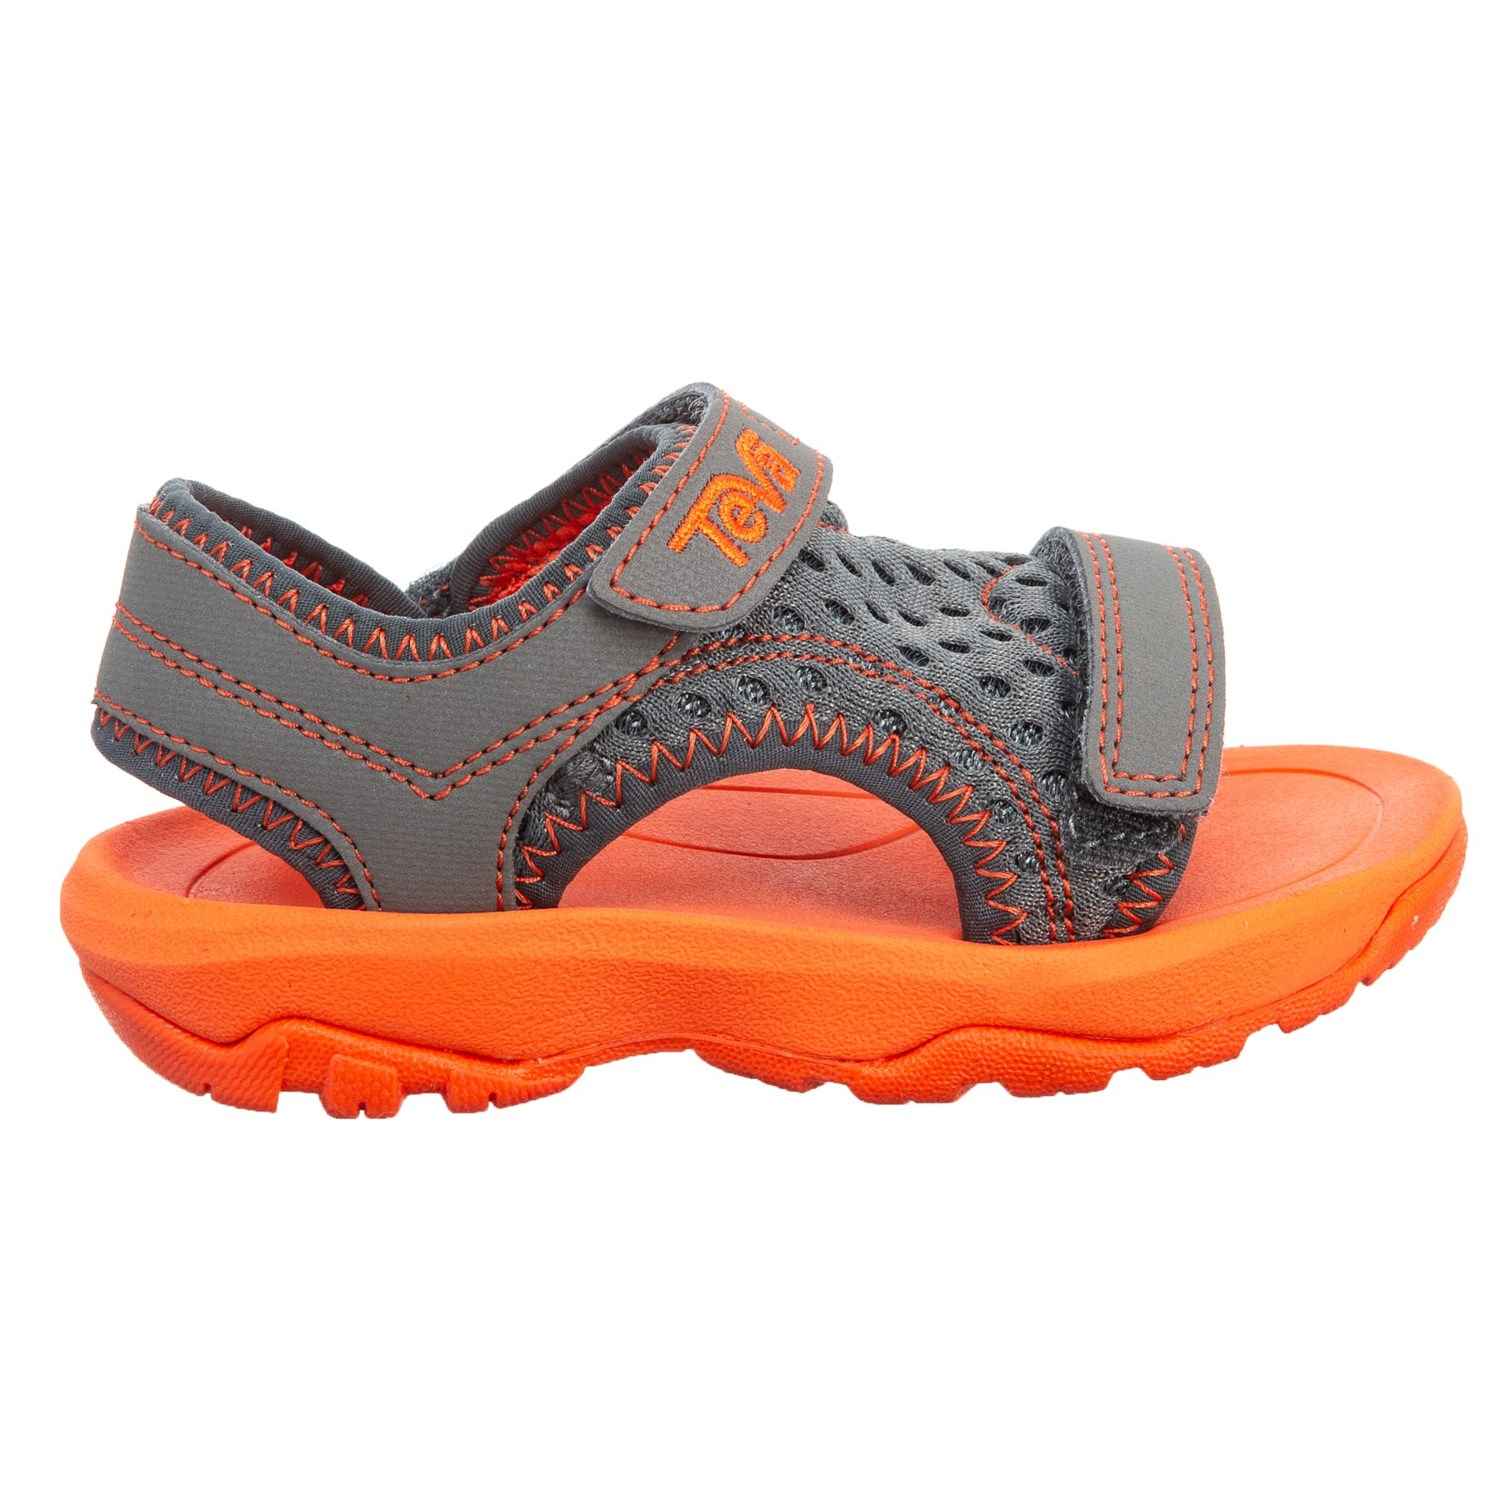 ef2204a1641610 Teva Psyclone XLT Sport Sandals (For Boys) - Save 20%